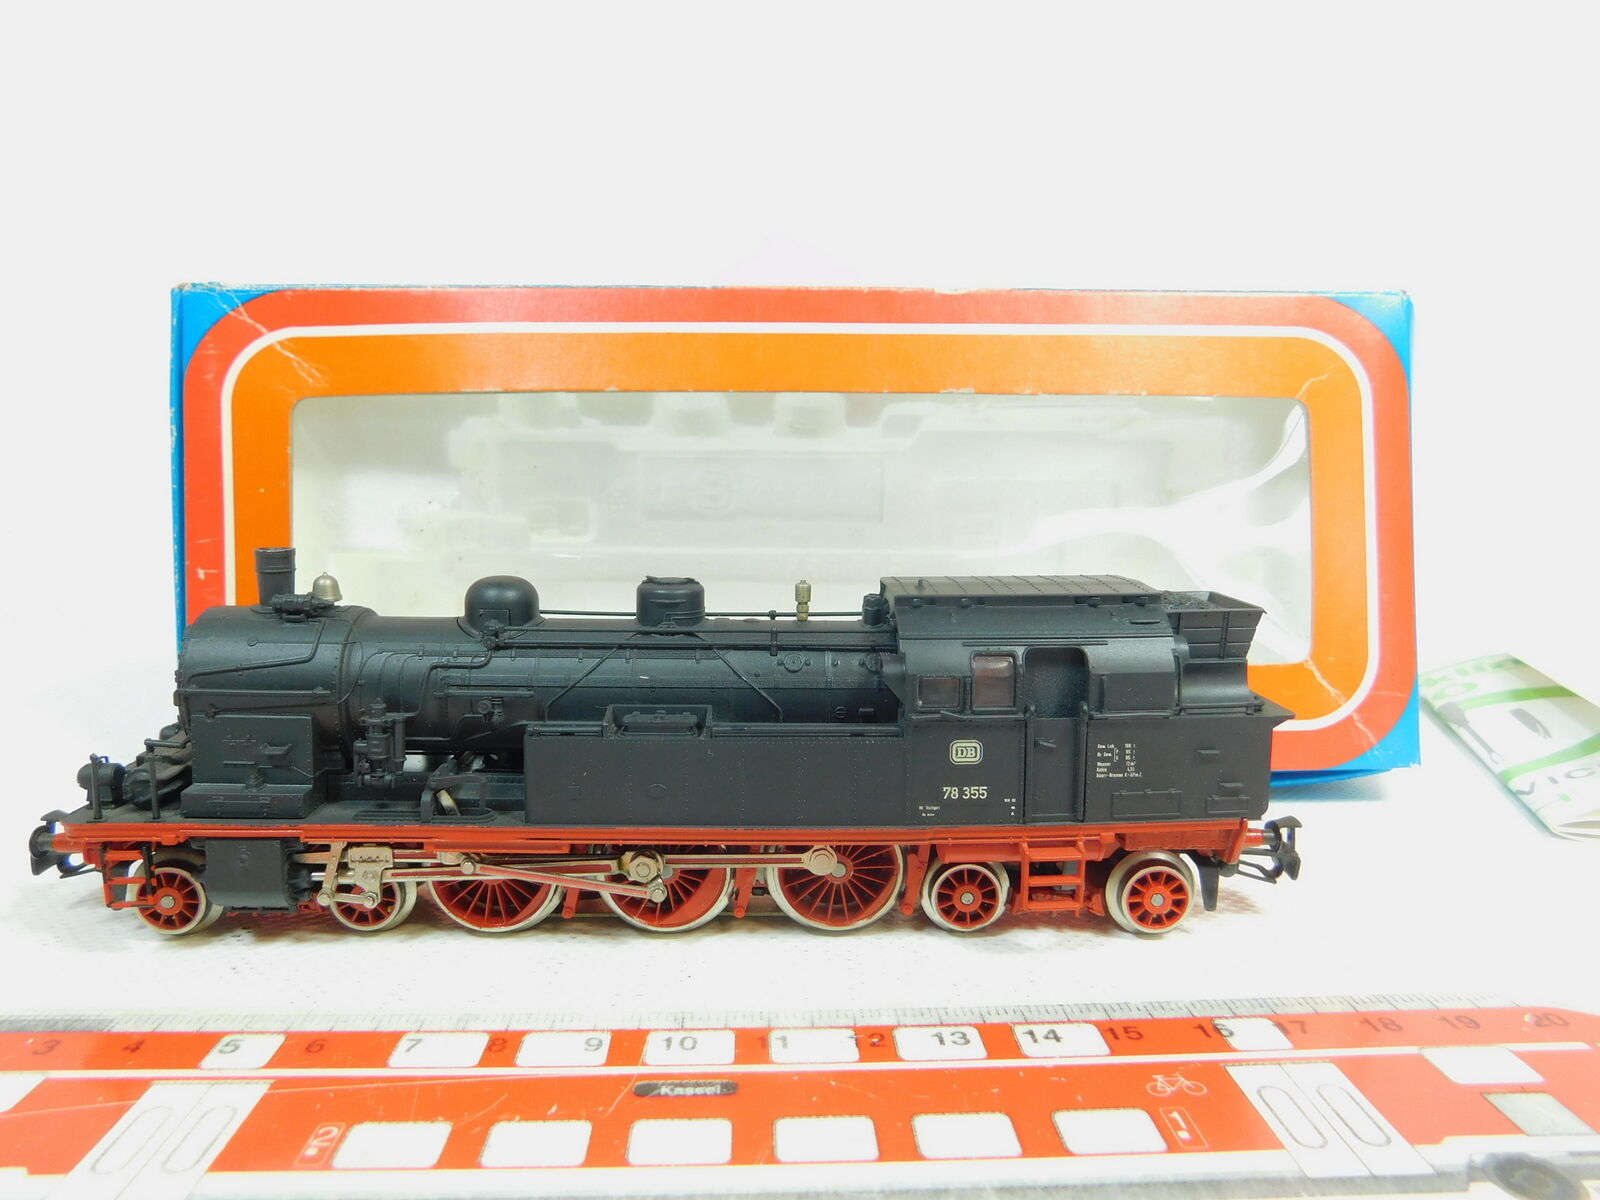 Bl136-1MÄRKLIN H0 AC 3106 Tender   Steam Locomotive Locomotive 78 355 DB OVP